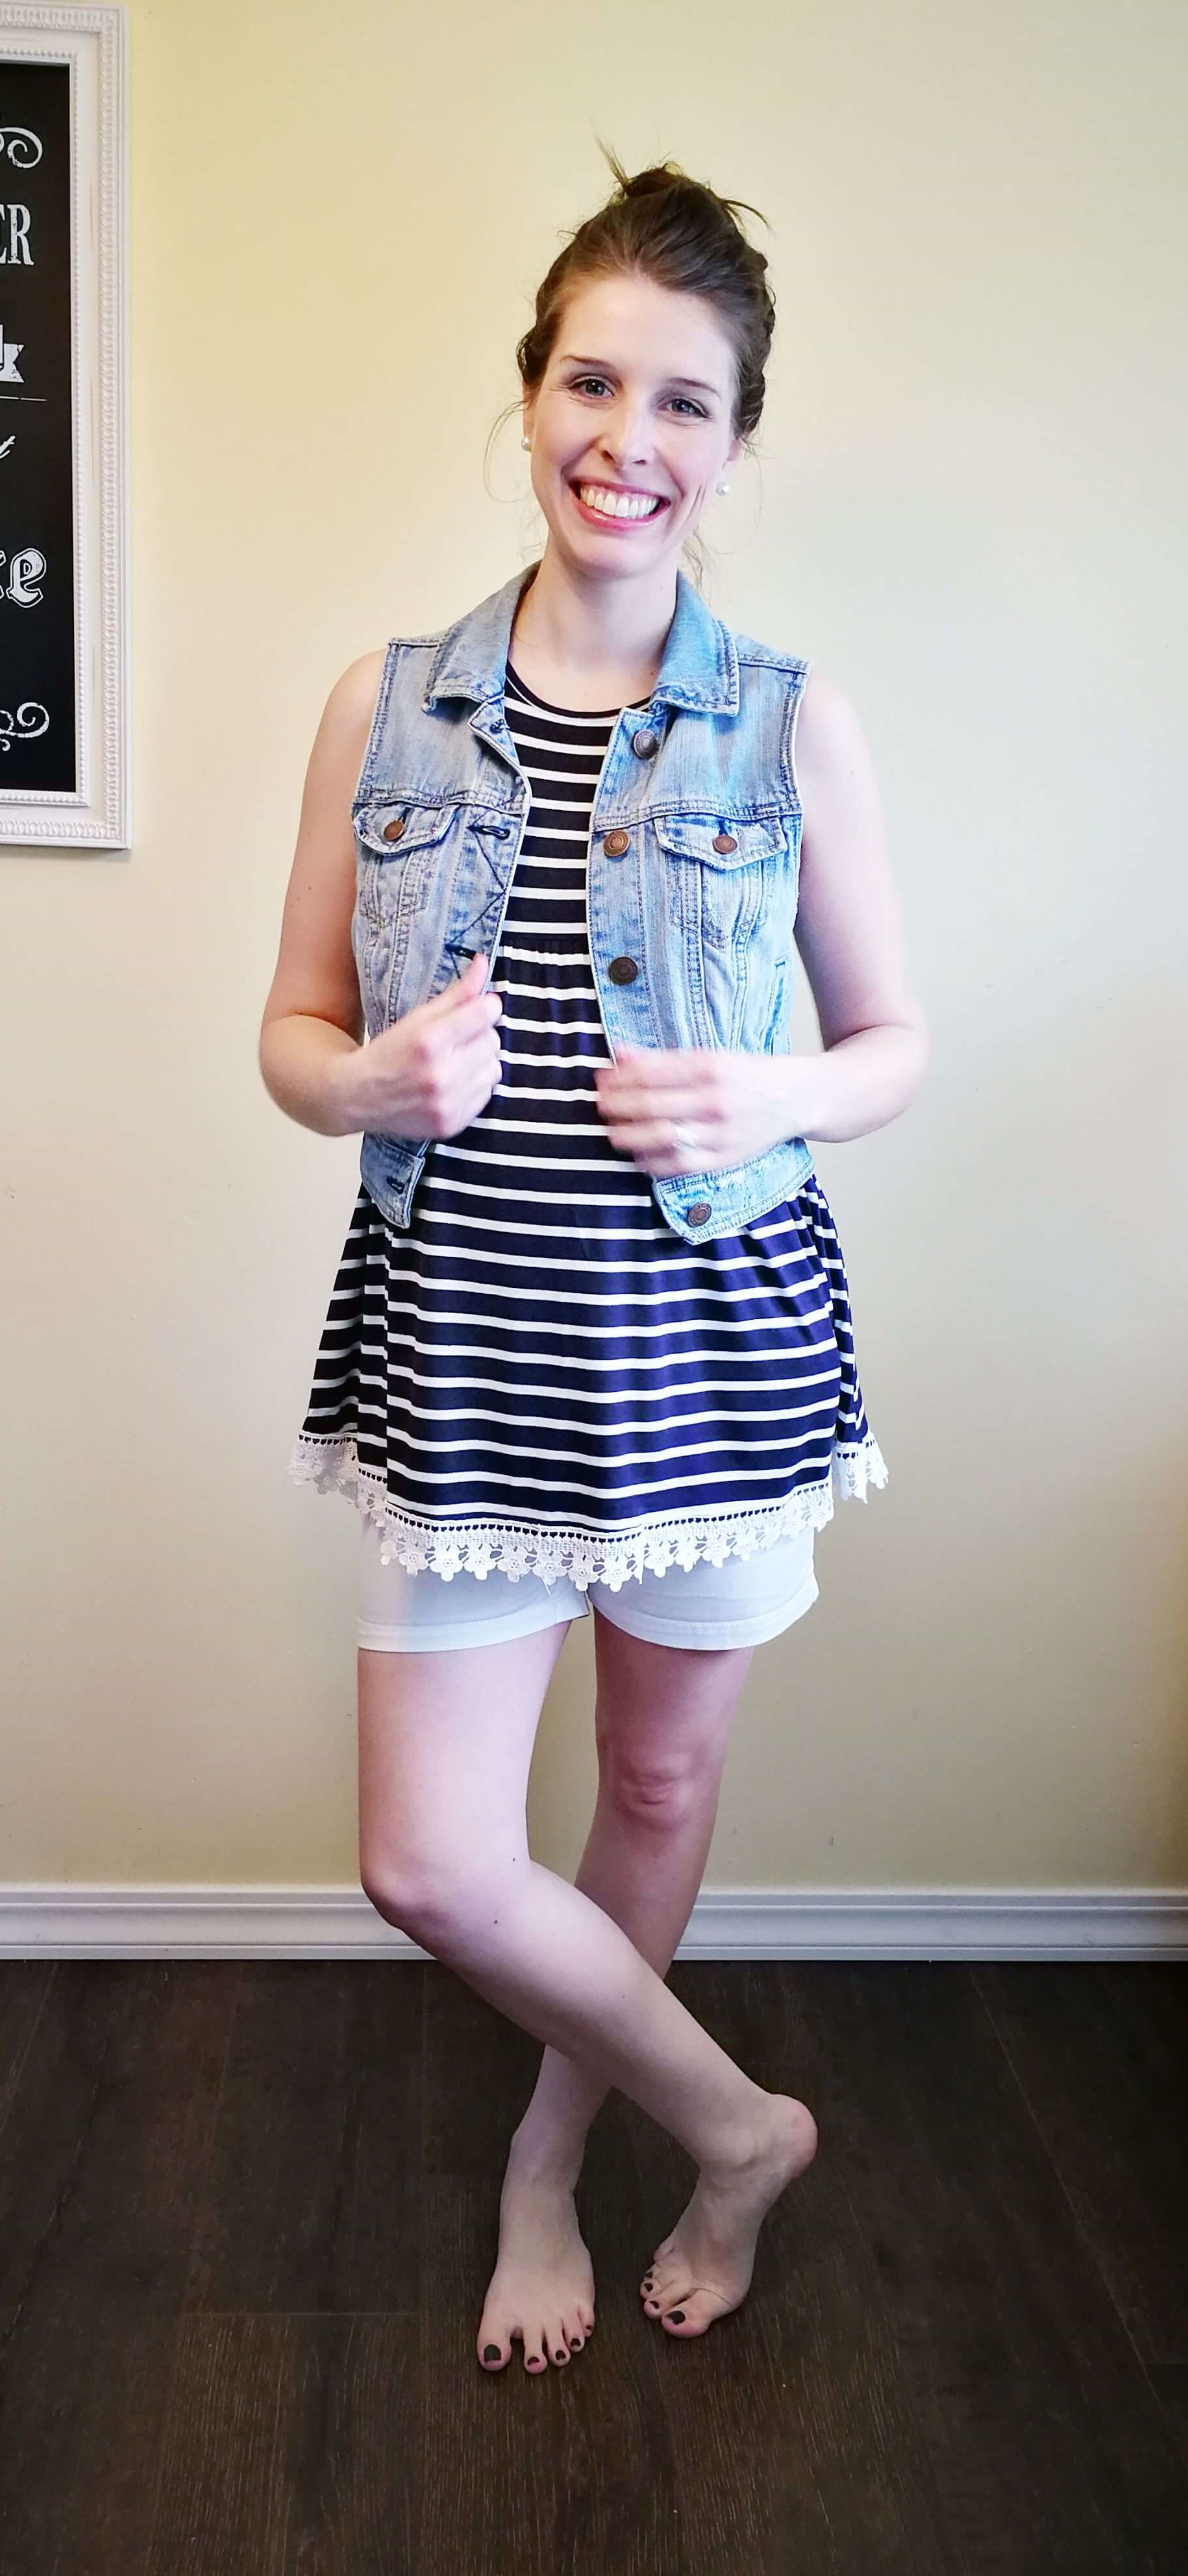 A navy blue and white striped shirt is so versatile! Here are 4 casual but chic ways to wear a striped #maternity tank top any time of the year... shows what to wear at home and how to change it to go on errands for total of 8 maternity outfits. So cute with the crochet trim! This blog has so many easy outfit ideas for busy moms. #mom #fashion #outfits #tips #ideas #easy #clothes #style #fall #winter #spring #summer #momlife #pregnancy #clothes #style